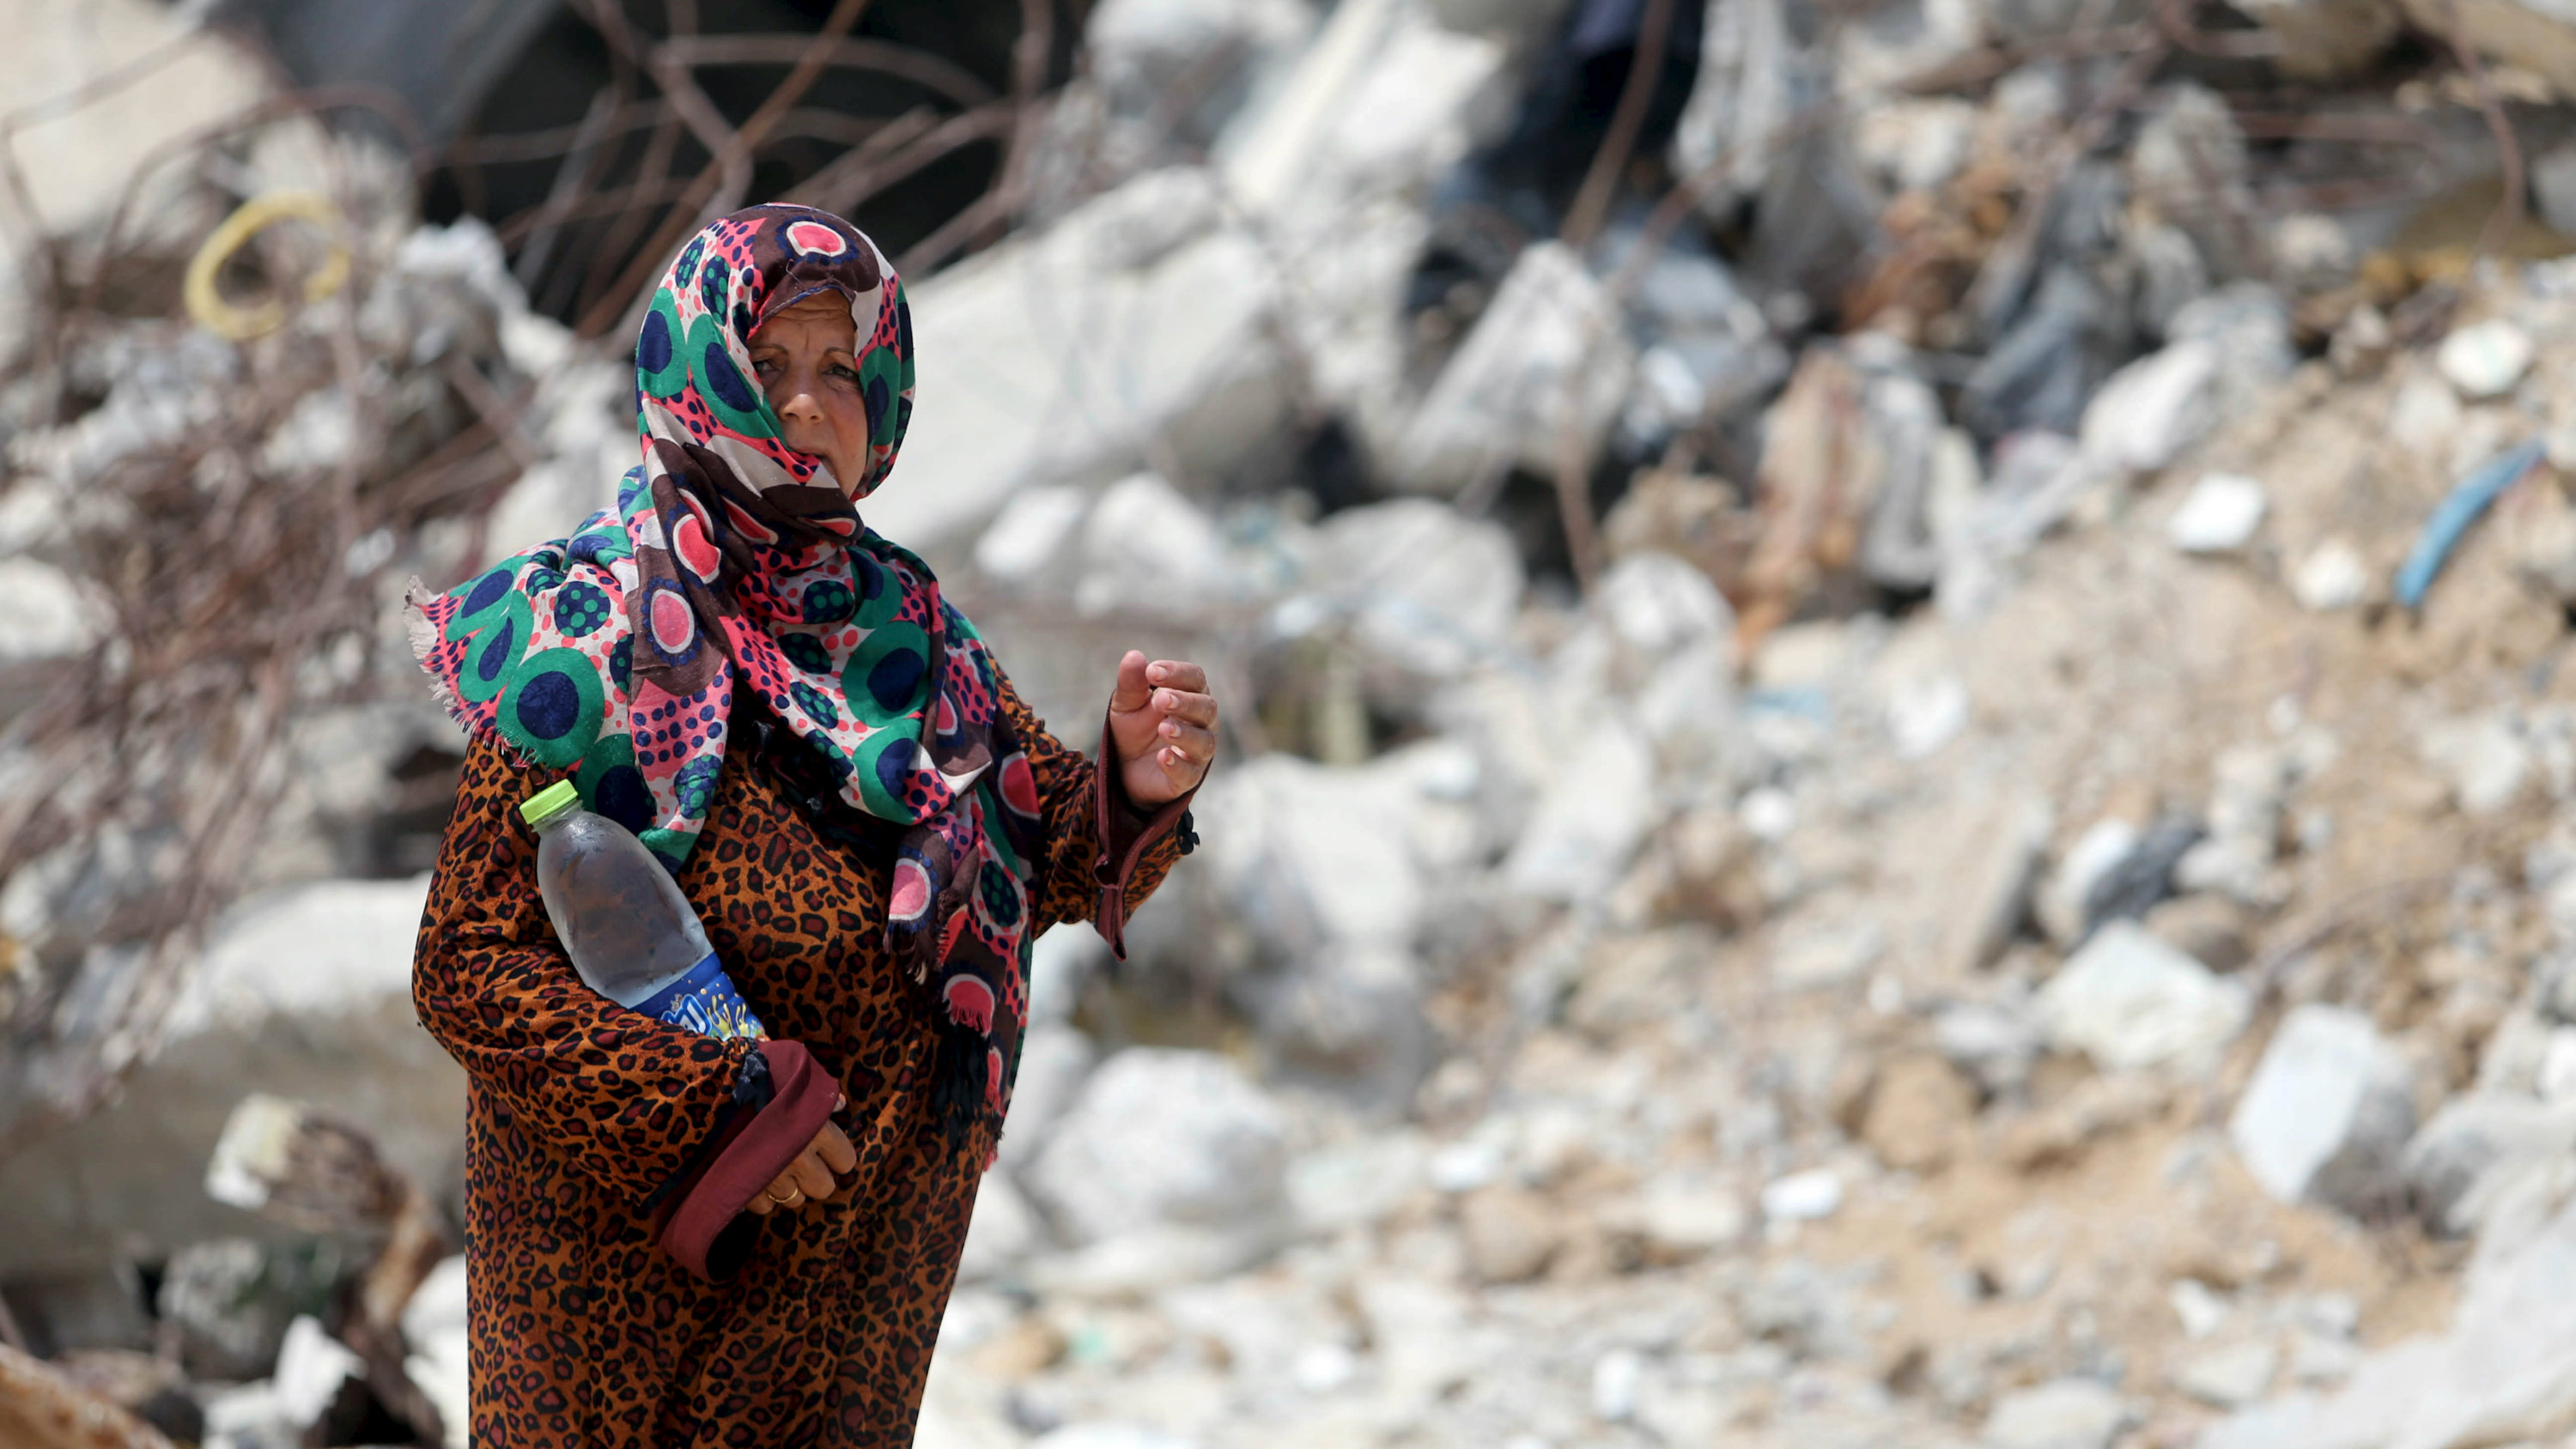 A Palestinian woman, whose house was destroyed by what witnesses said was Israeli shelling during a 50-day war last summer, holds a bottle as she walks outside her makeshift shelter during a wave of heat in Khan Younis in the southern Gaza Strip August 3, 2015.